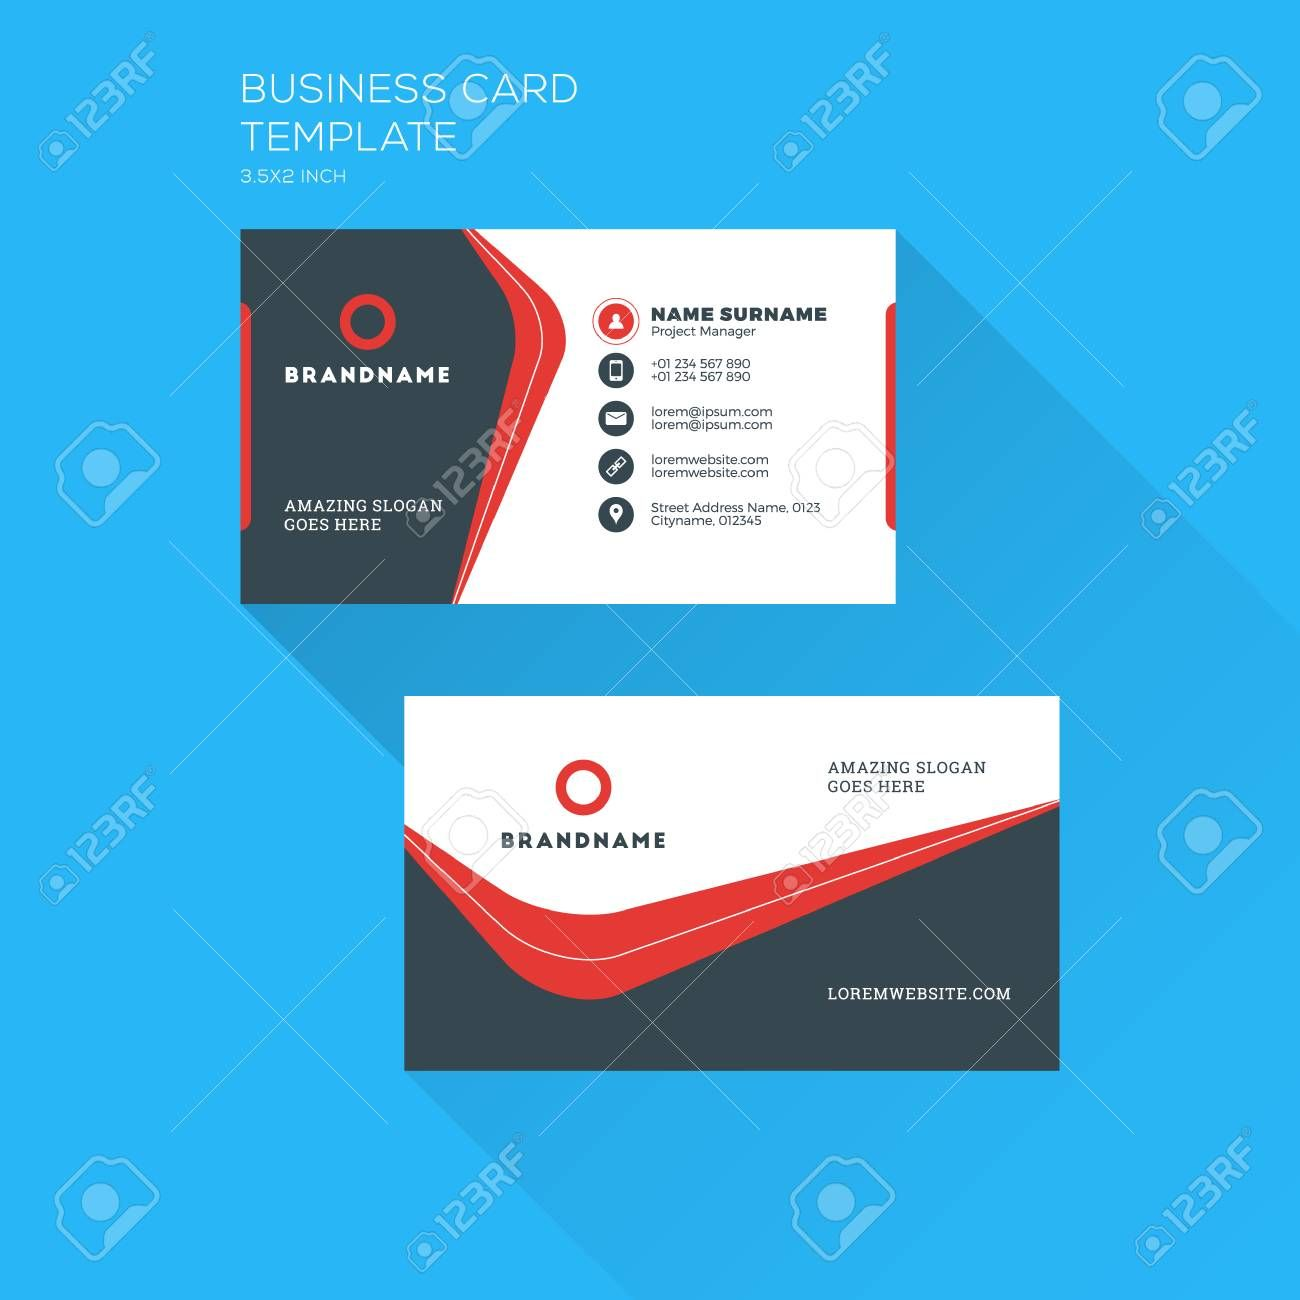 Corporate Business Card Print Template Personal Visiting Card Within Free Personal Business Card Templates Cumed Org